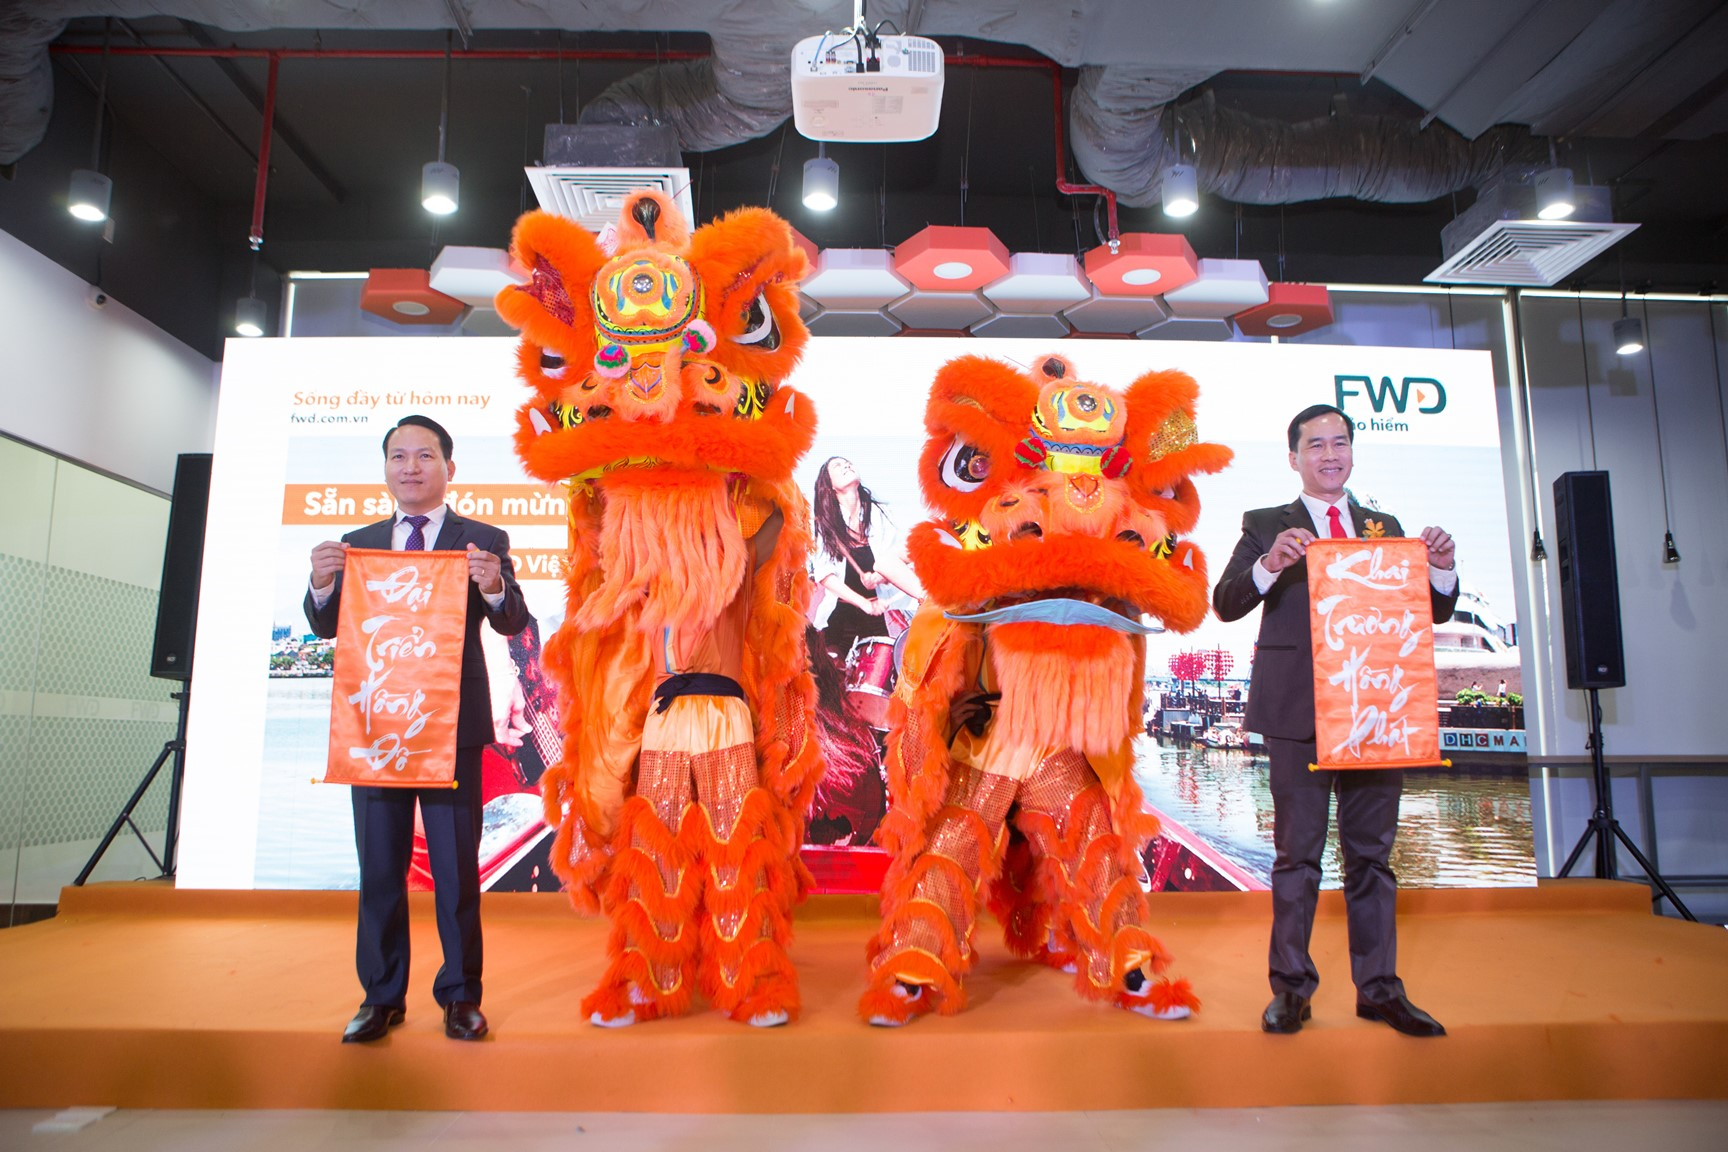 fwd opens third office in vietnam to support rapid business growth